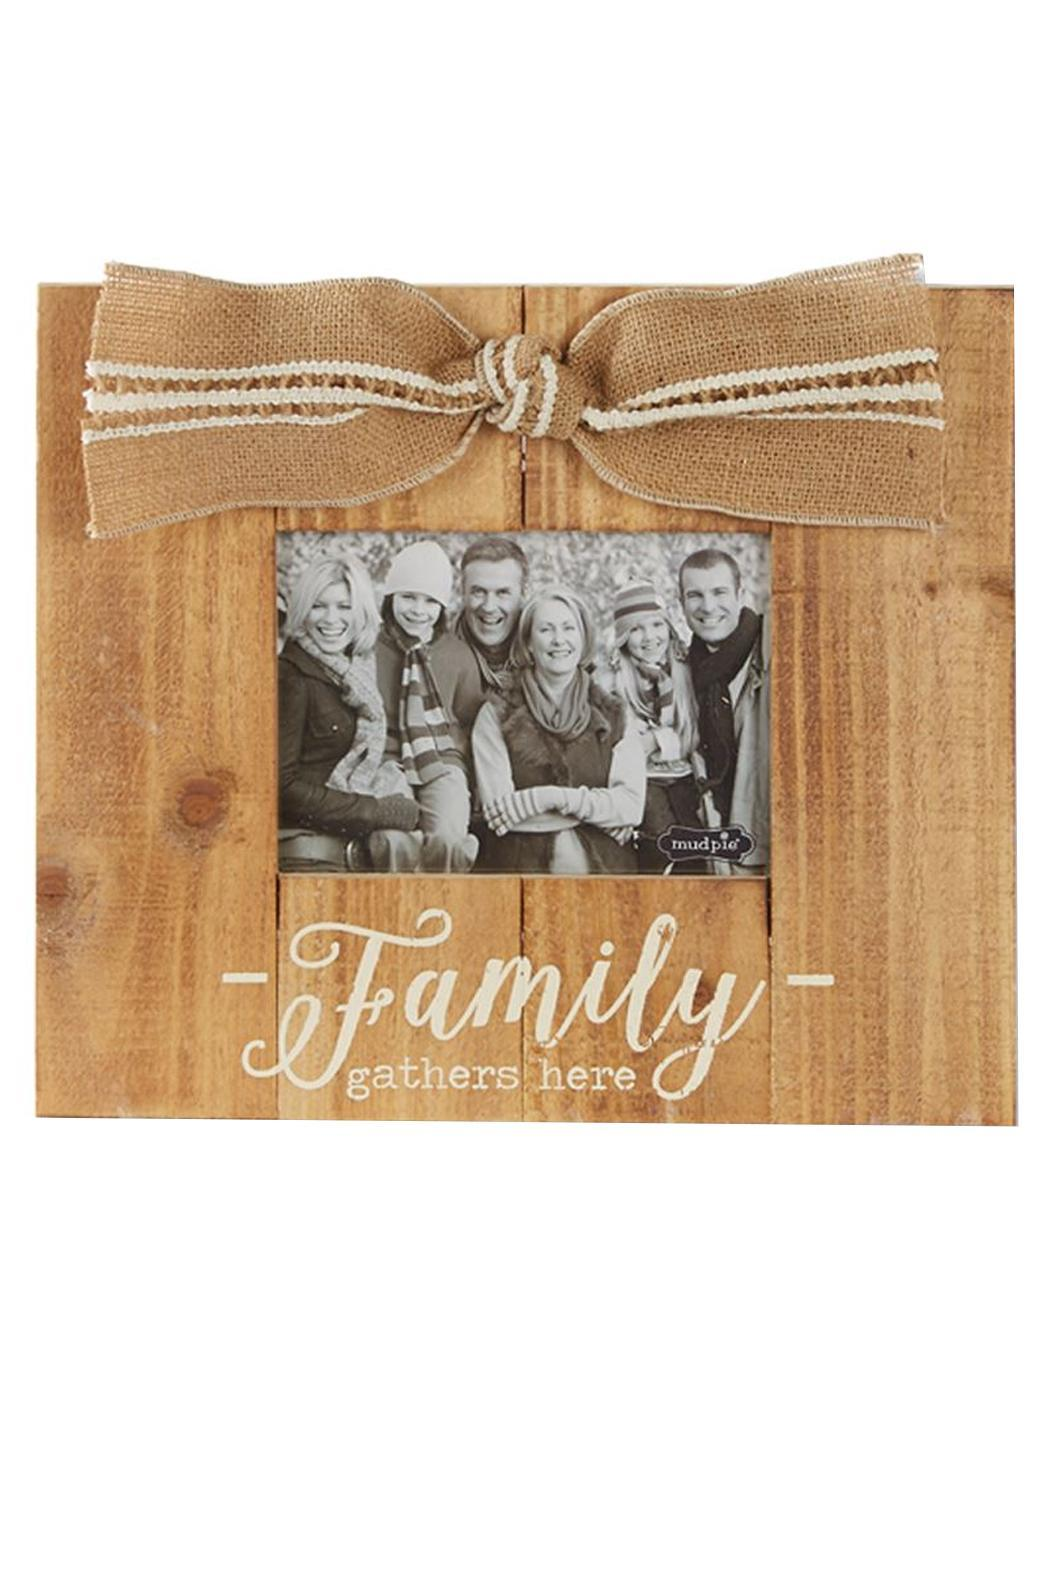 mud pie family gathers frame from new jersey by thread u0026 39 s boutique  u2014 shoptiques